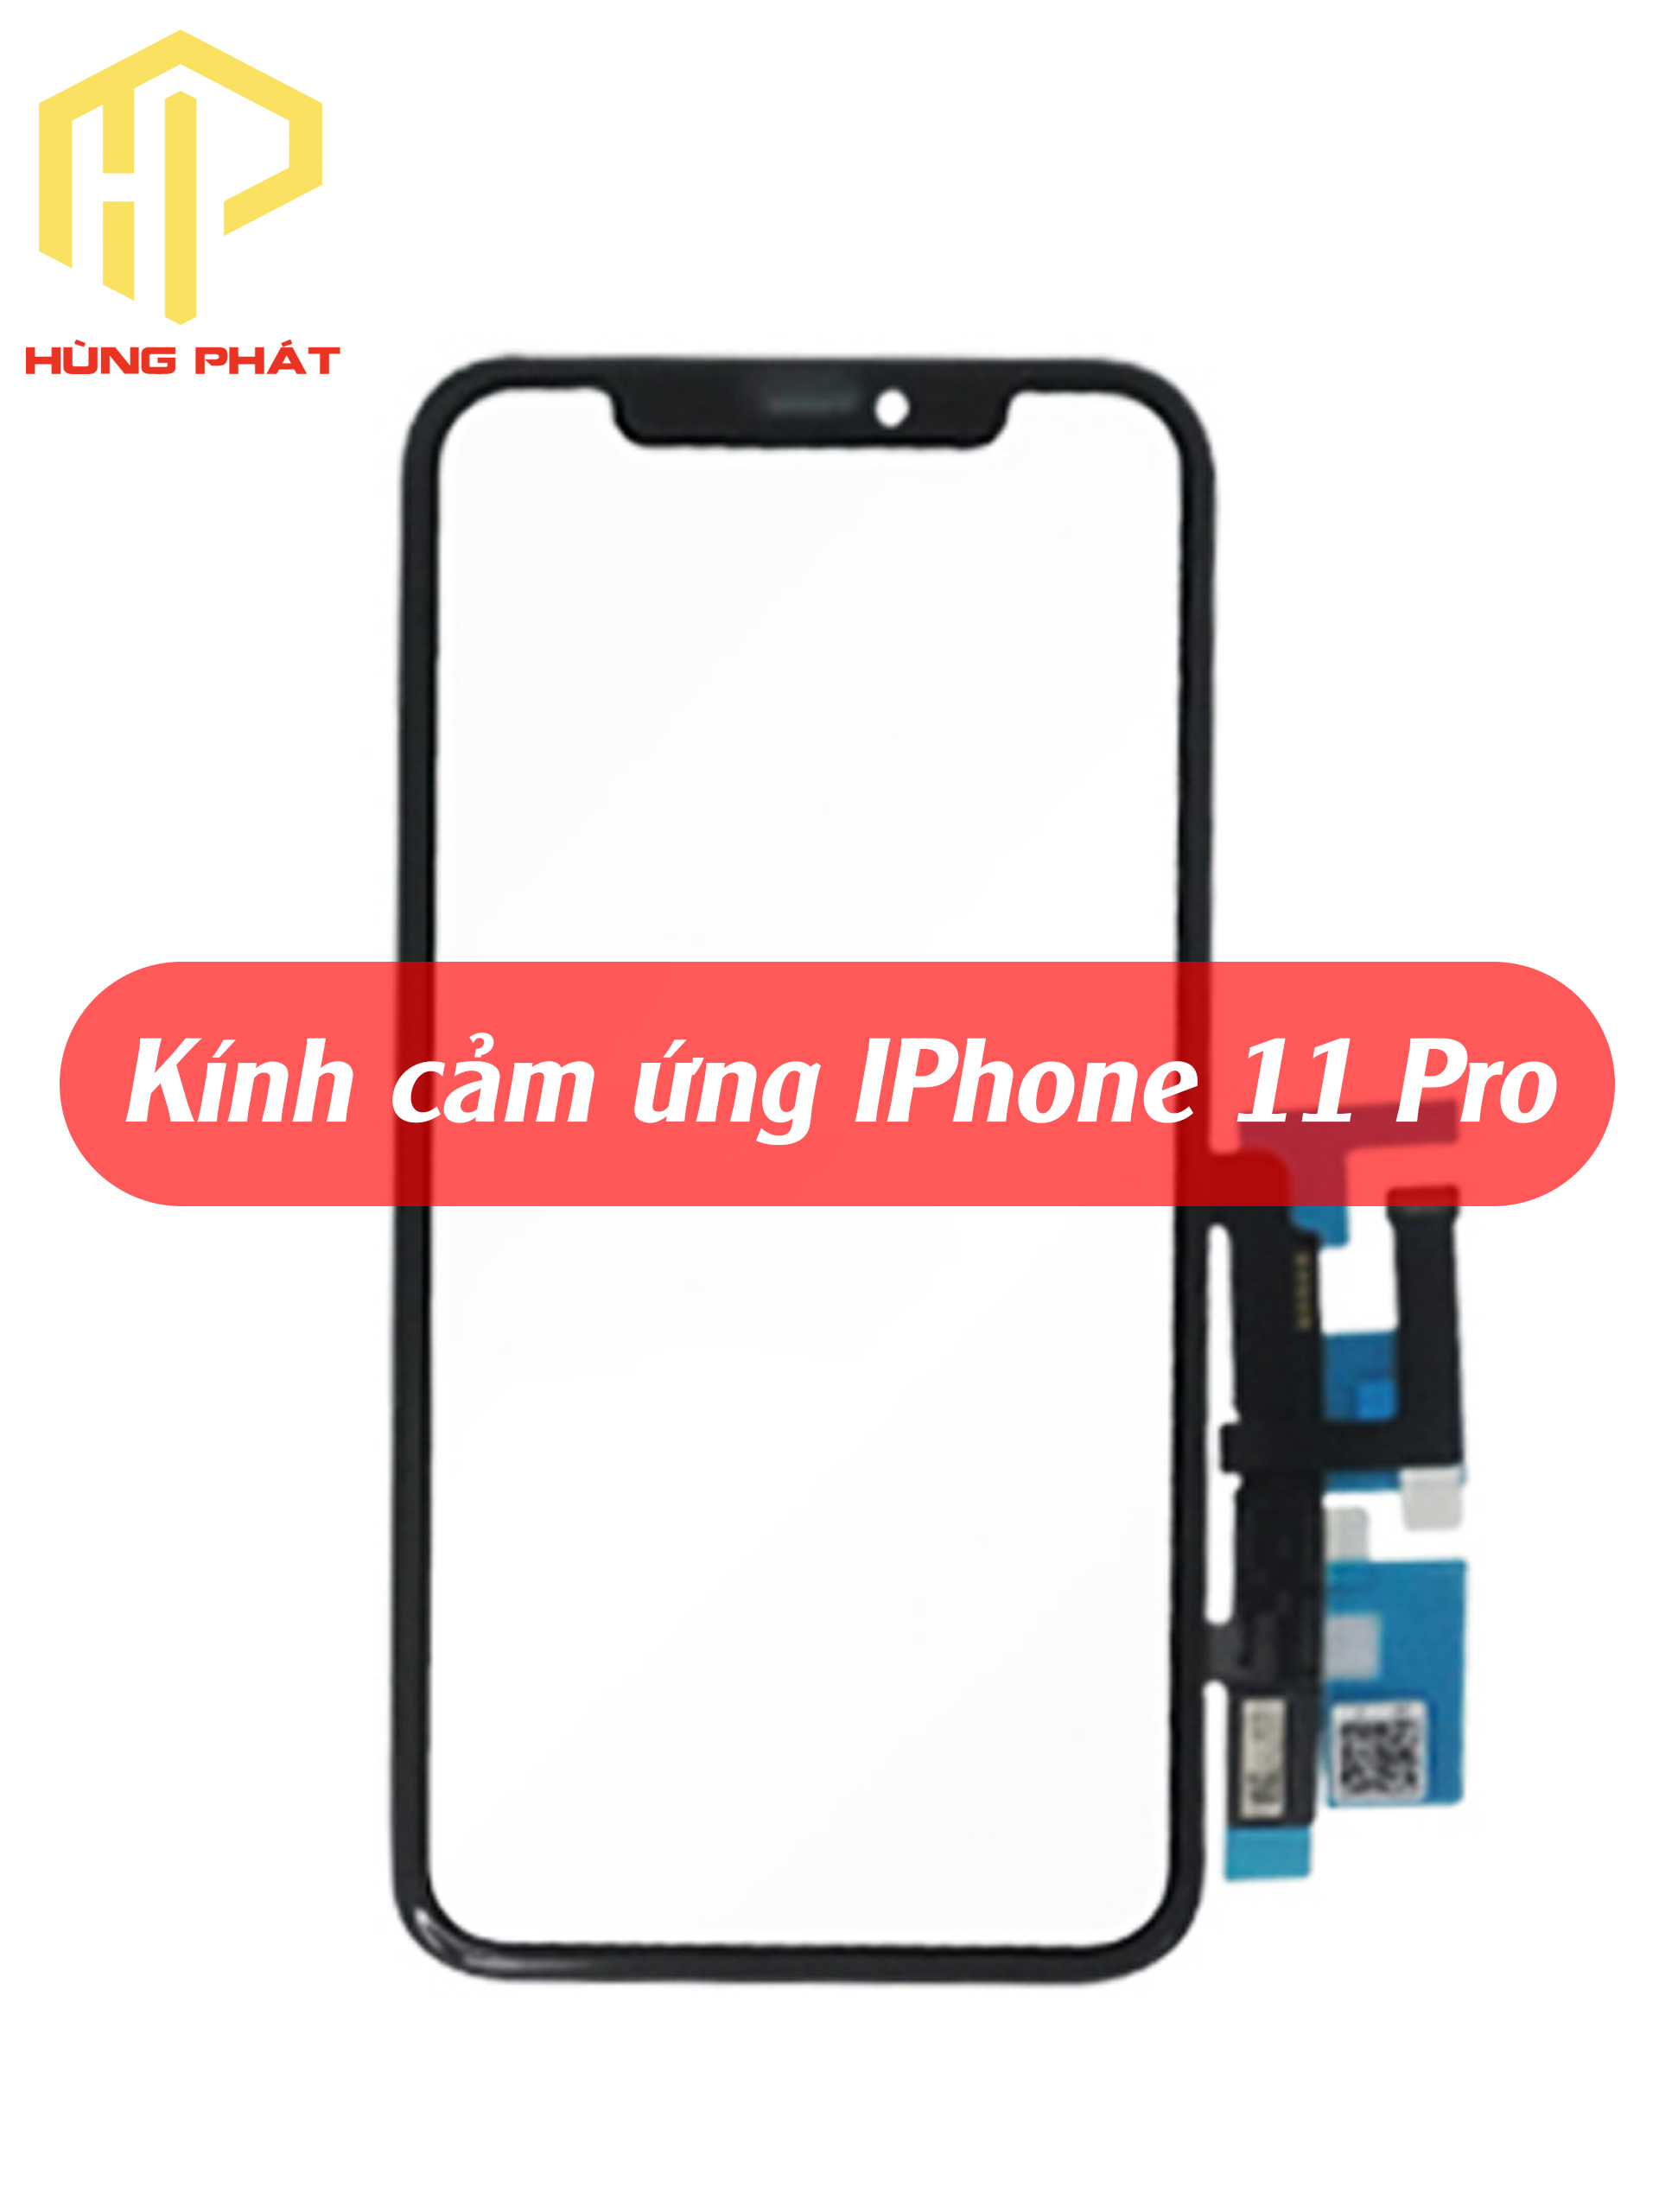 ep-kinh-cam-ung-iphone-11-pro